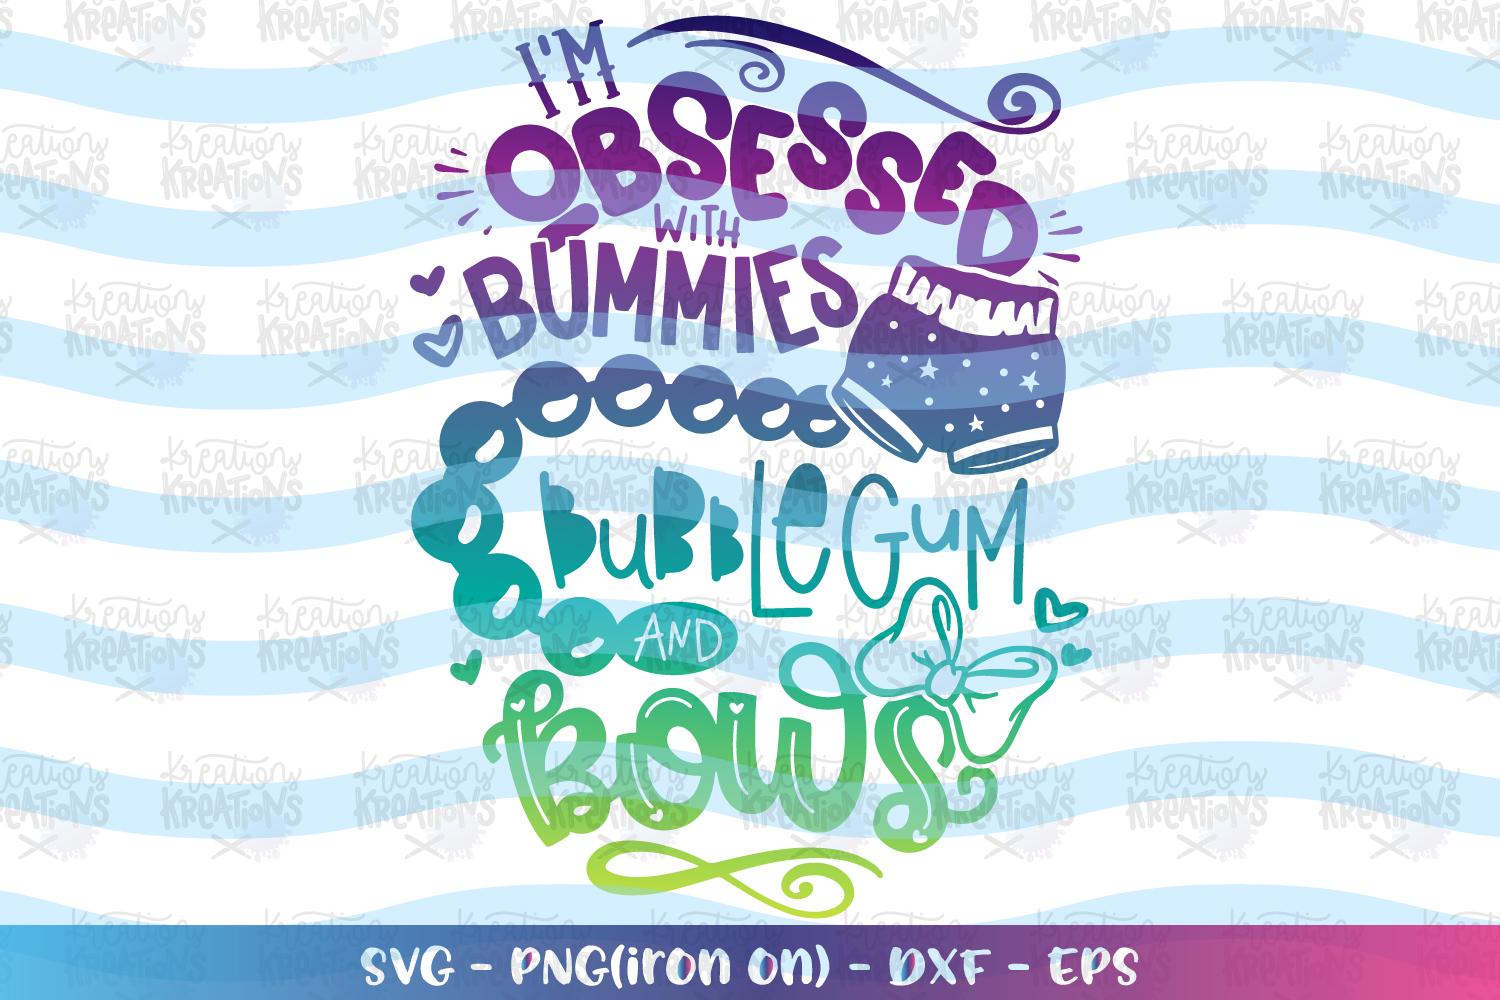 Girls svg I'm obsessed with Bummies Bubblegum and Bows svg example image 1